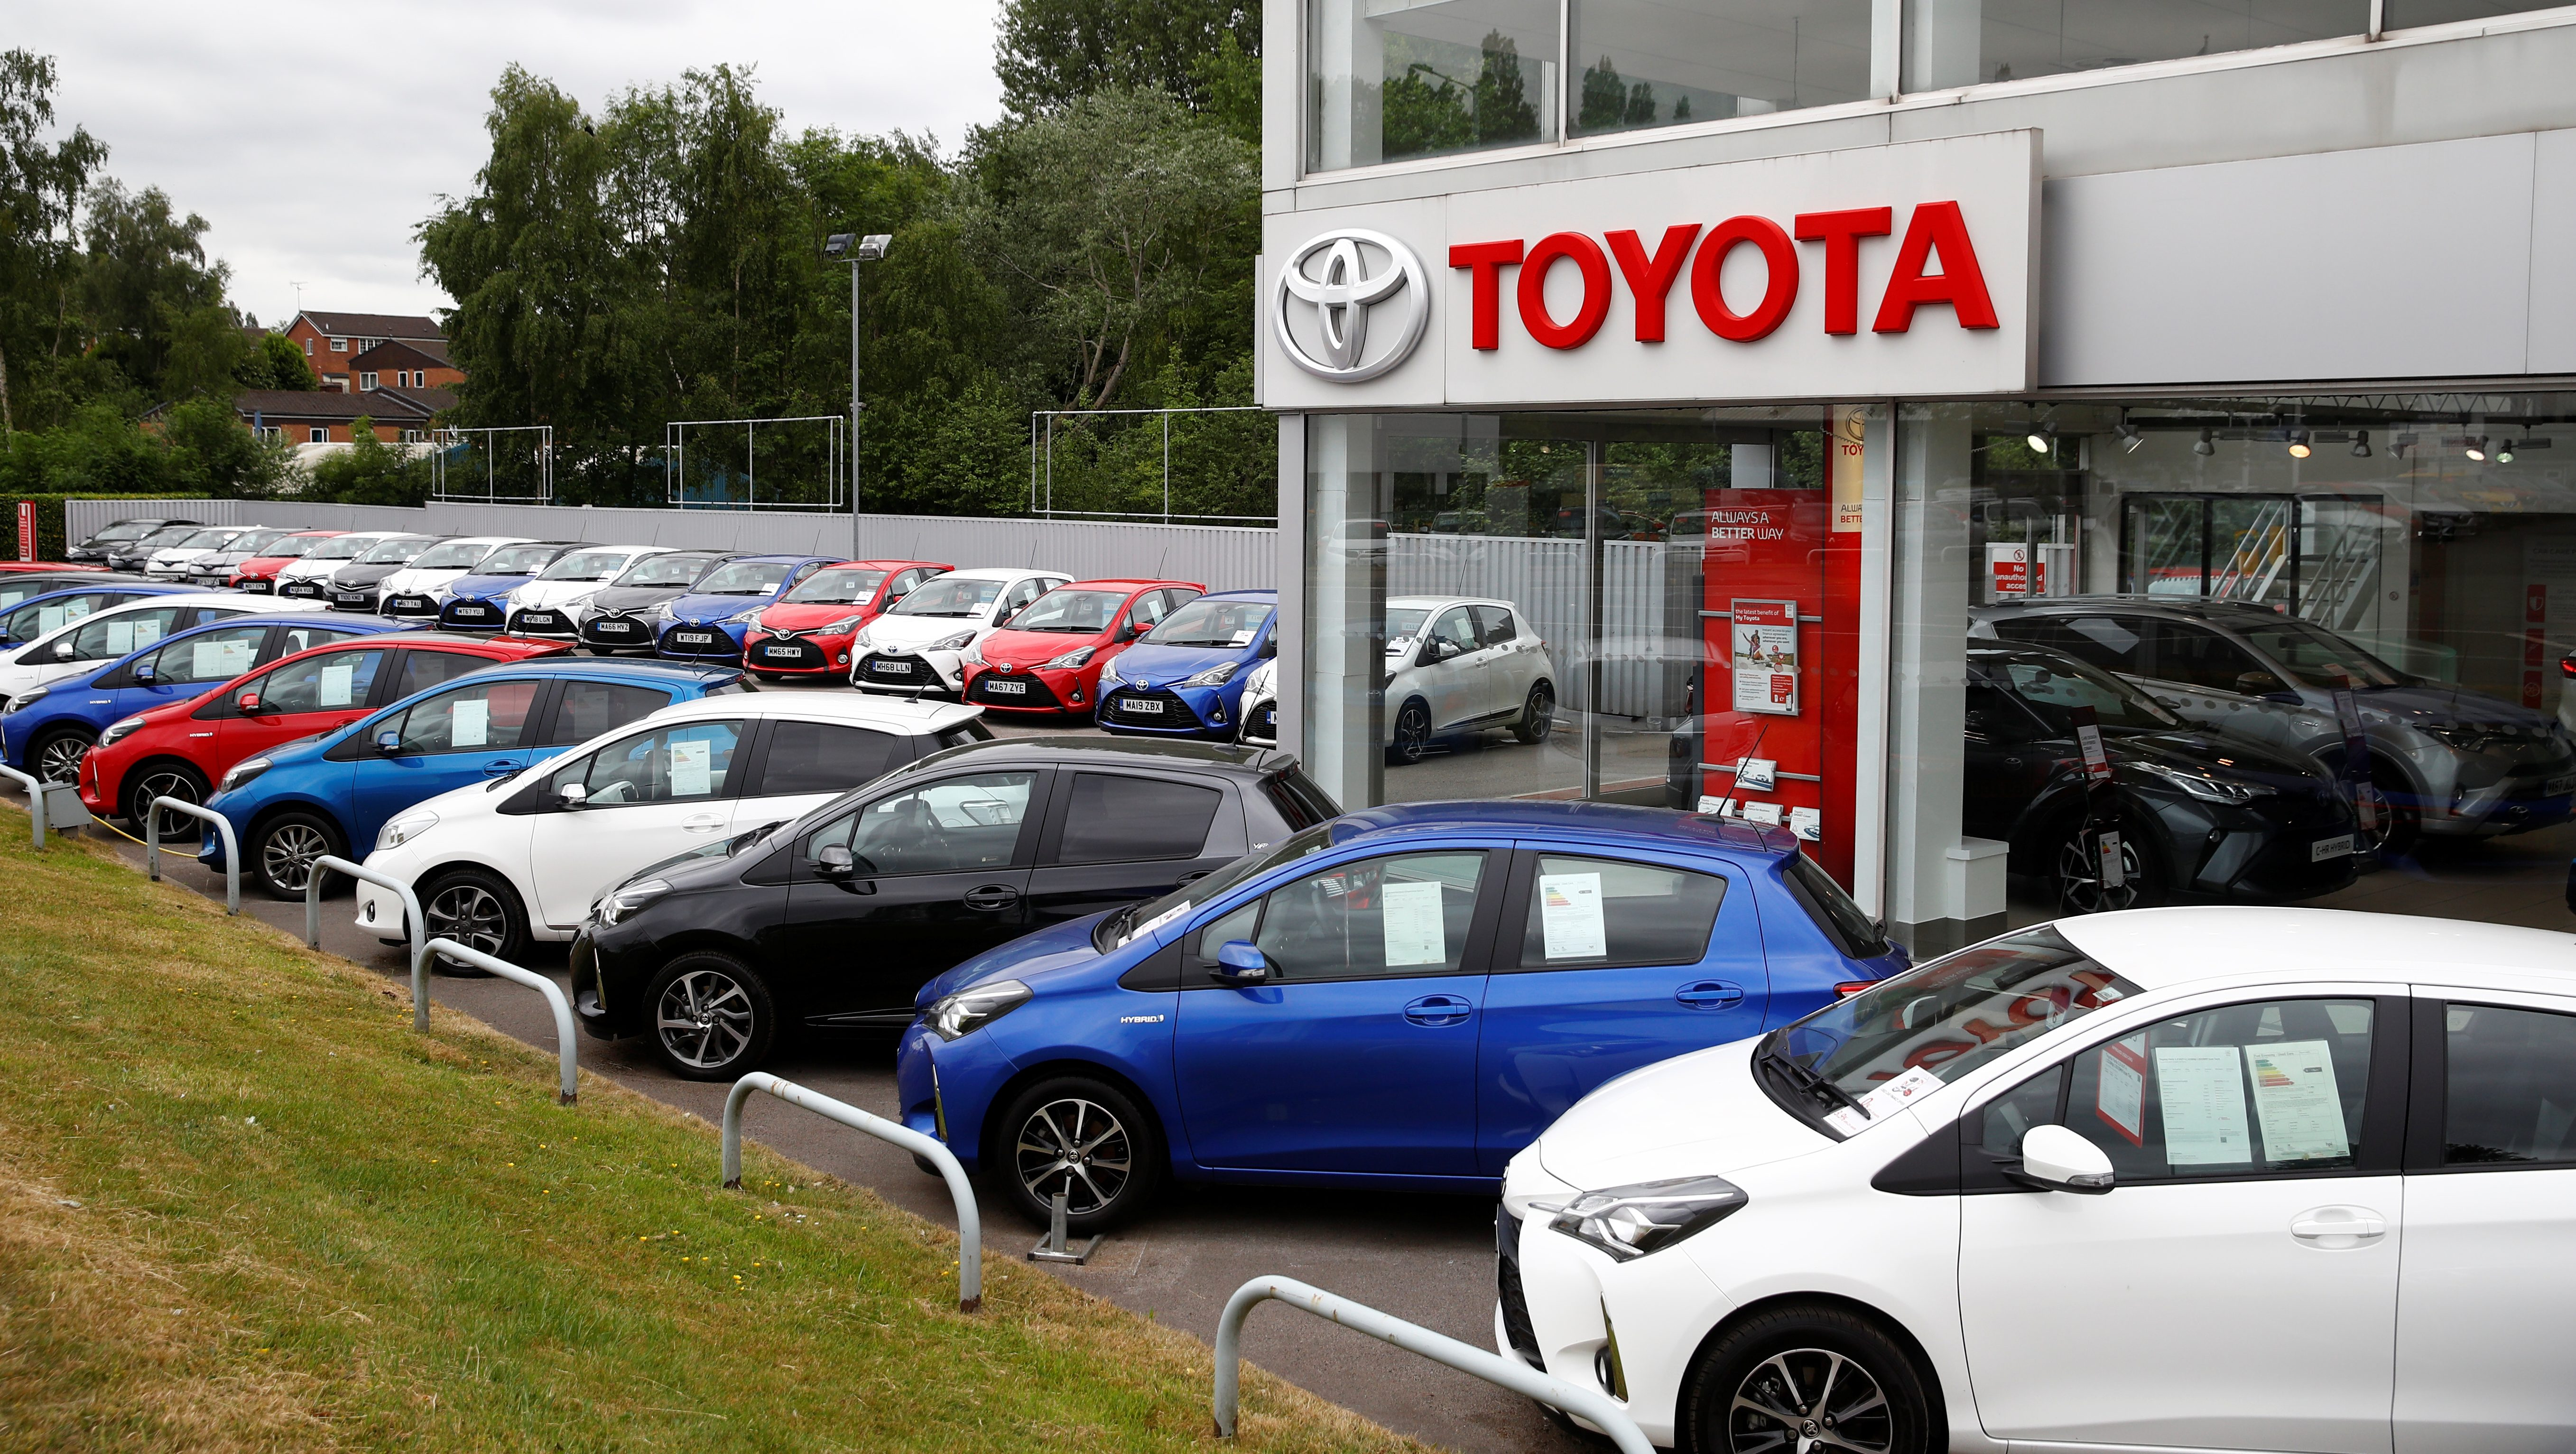 📬 Daily Brief: Evictions halted, Toyota's hot streak, happy city mice